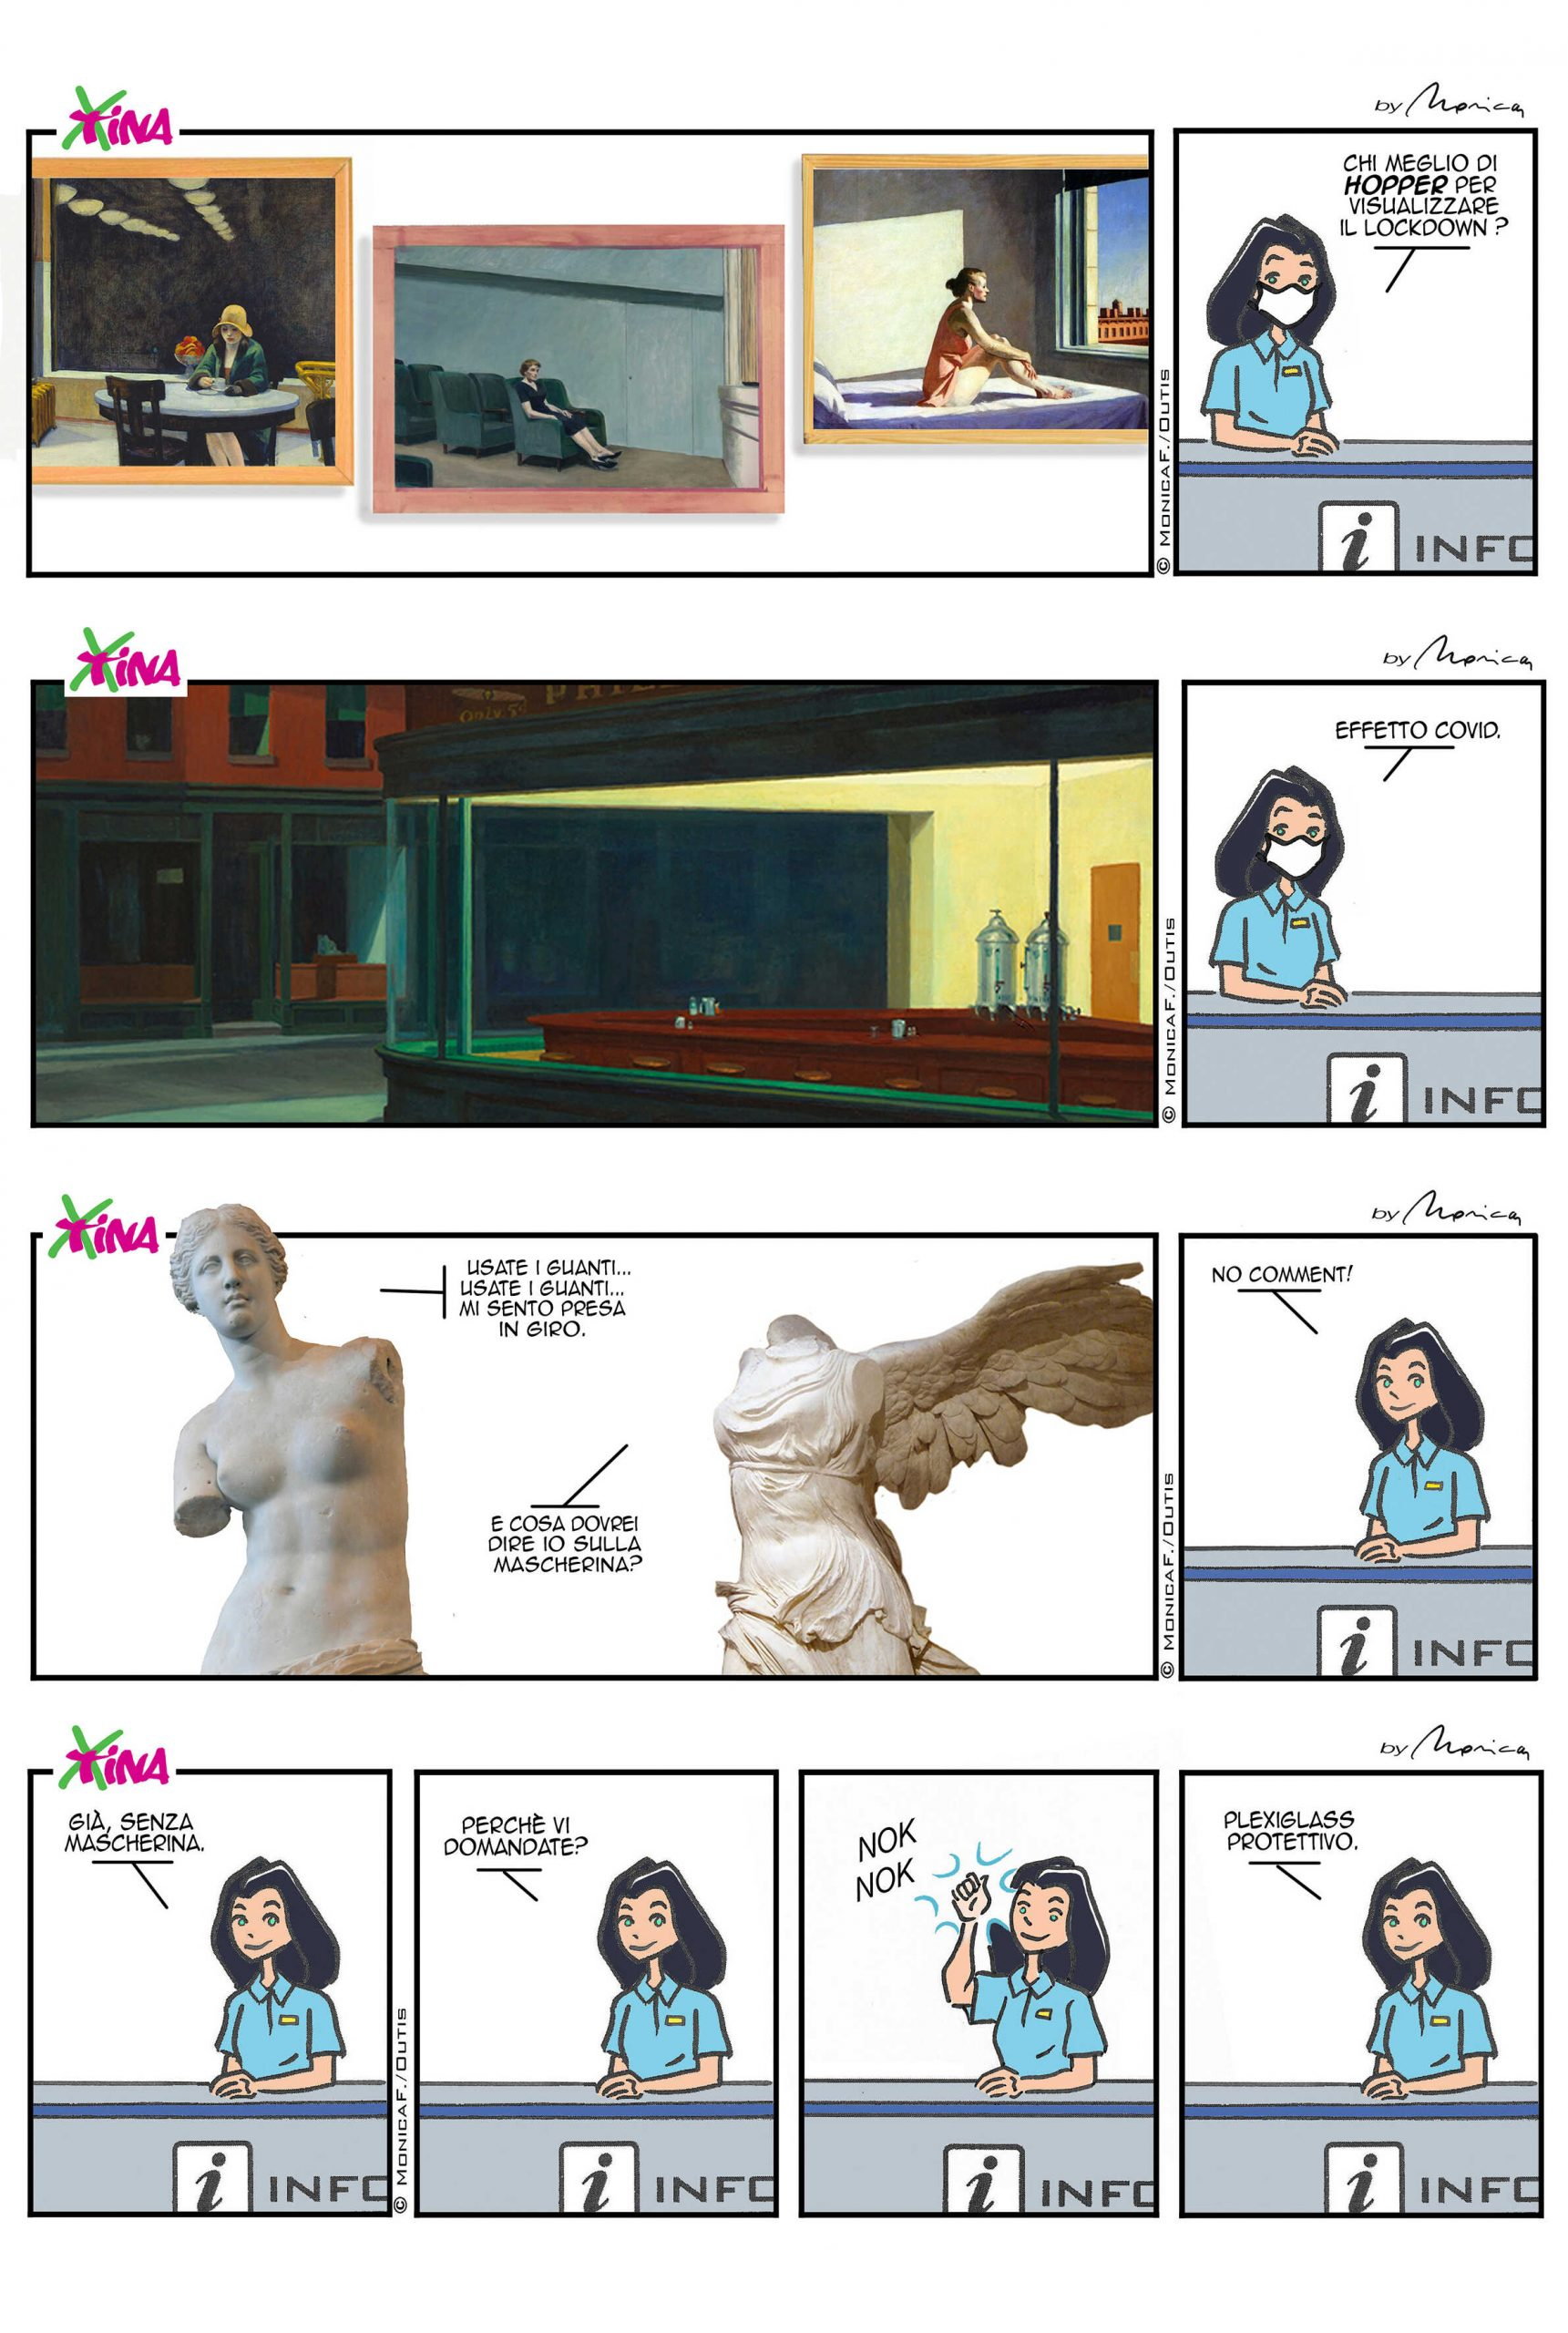 Xtina latest strips on Covid19